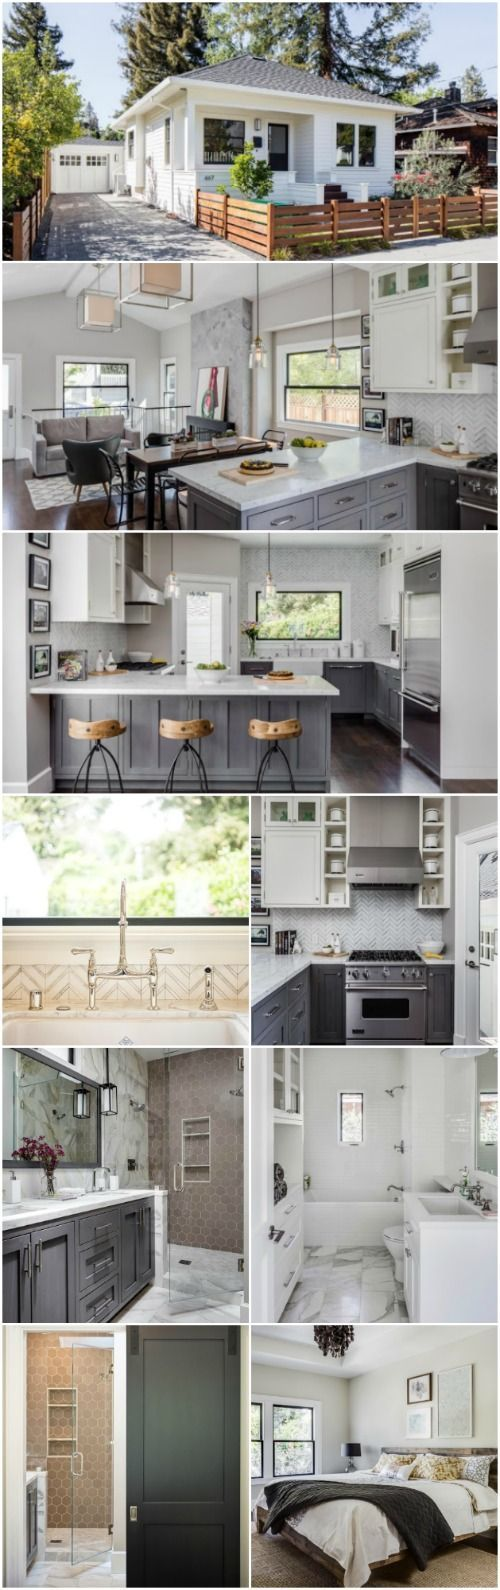 25 best tiny houses ideas on pinterest tiny homes mini